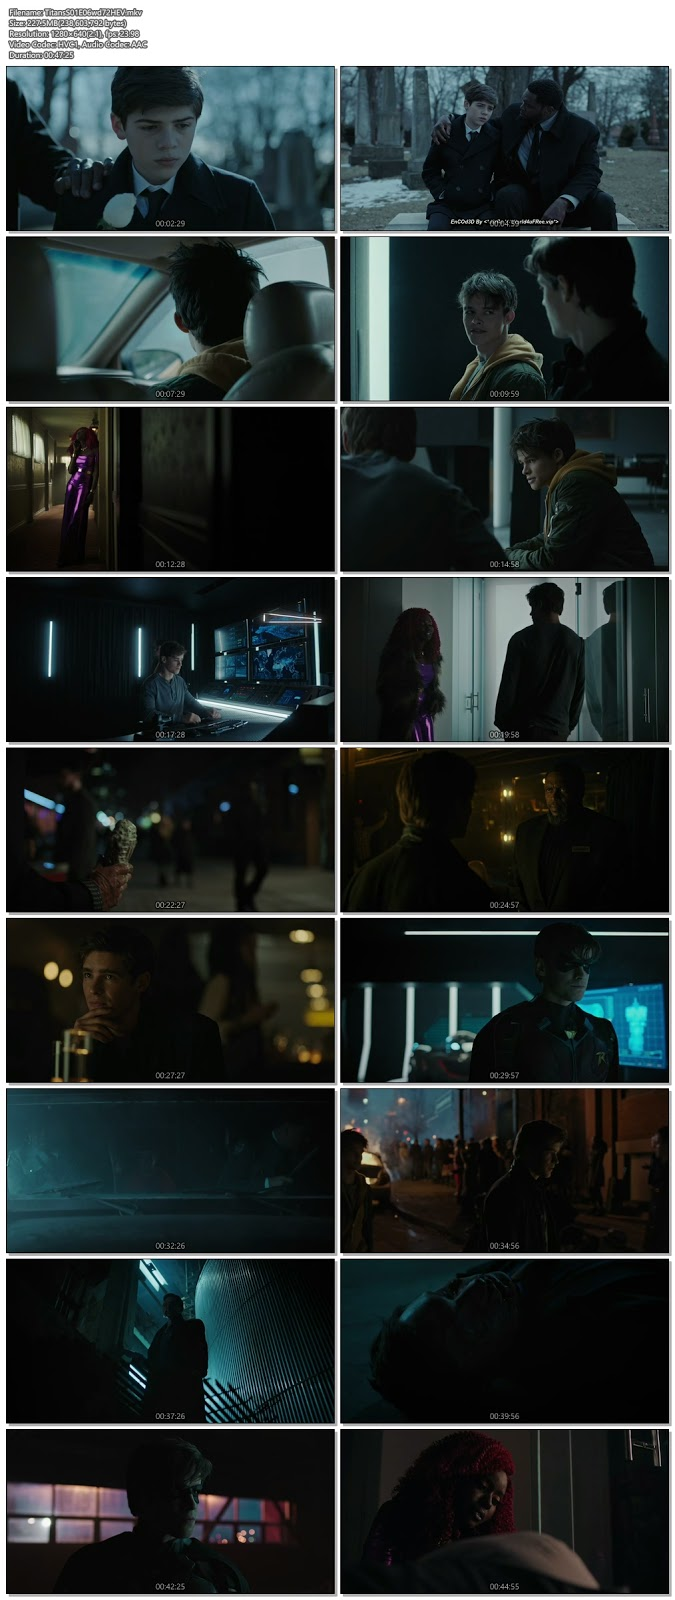 Titans S01 Episode 06 720p HDTV 200MB ESub x265 HEVC , hollwood tv series Titans S01 Episode 06 720p hdtv tv show hevc x265 hdrip 200mb 250mb free download or watch online at world4ufree.fun